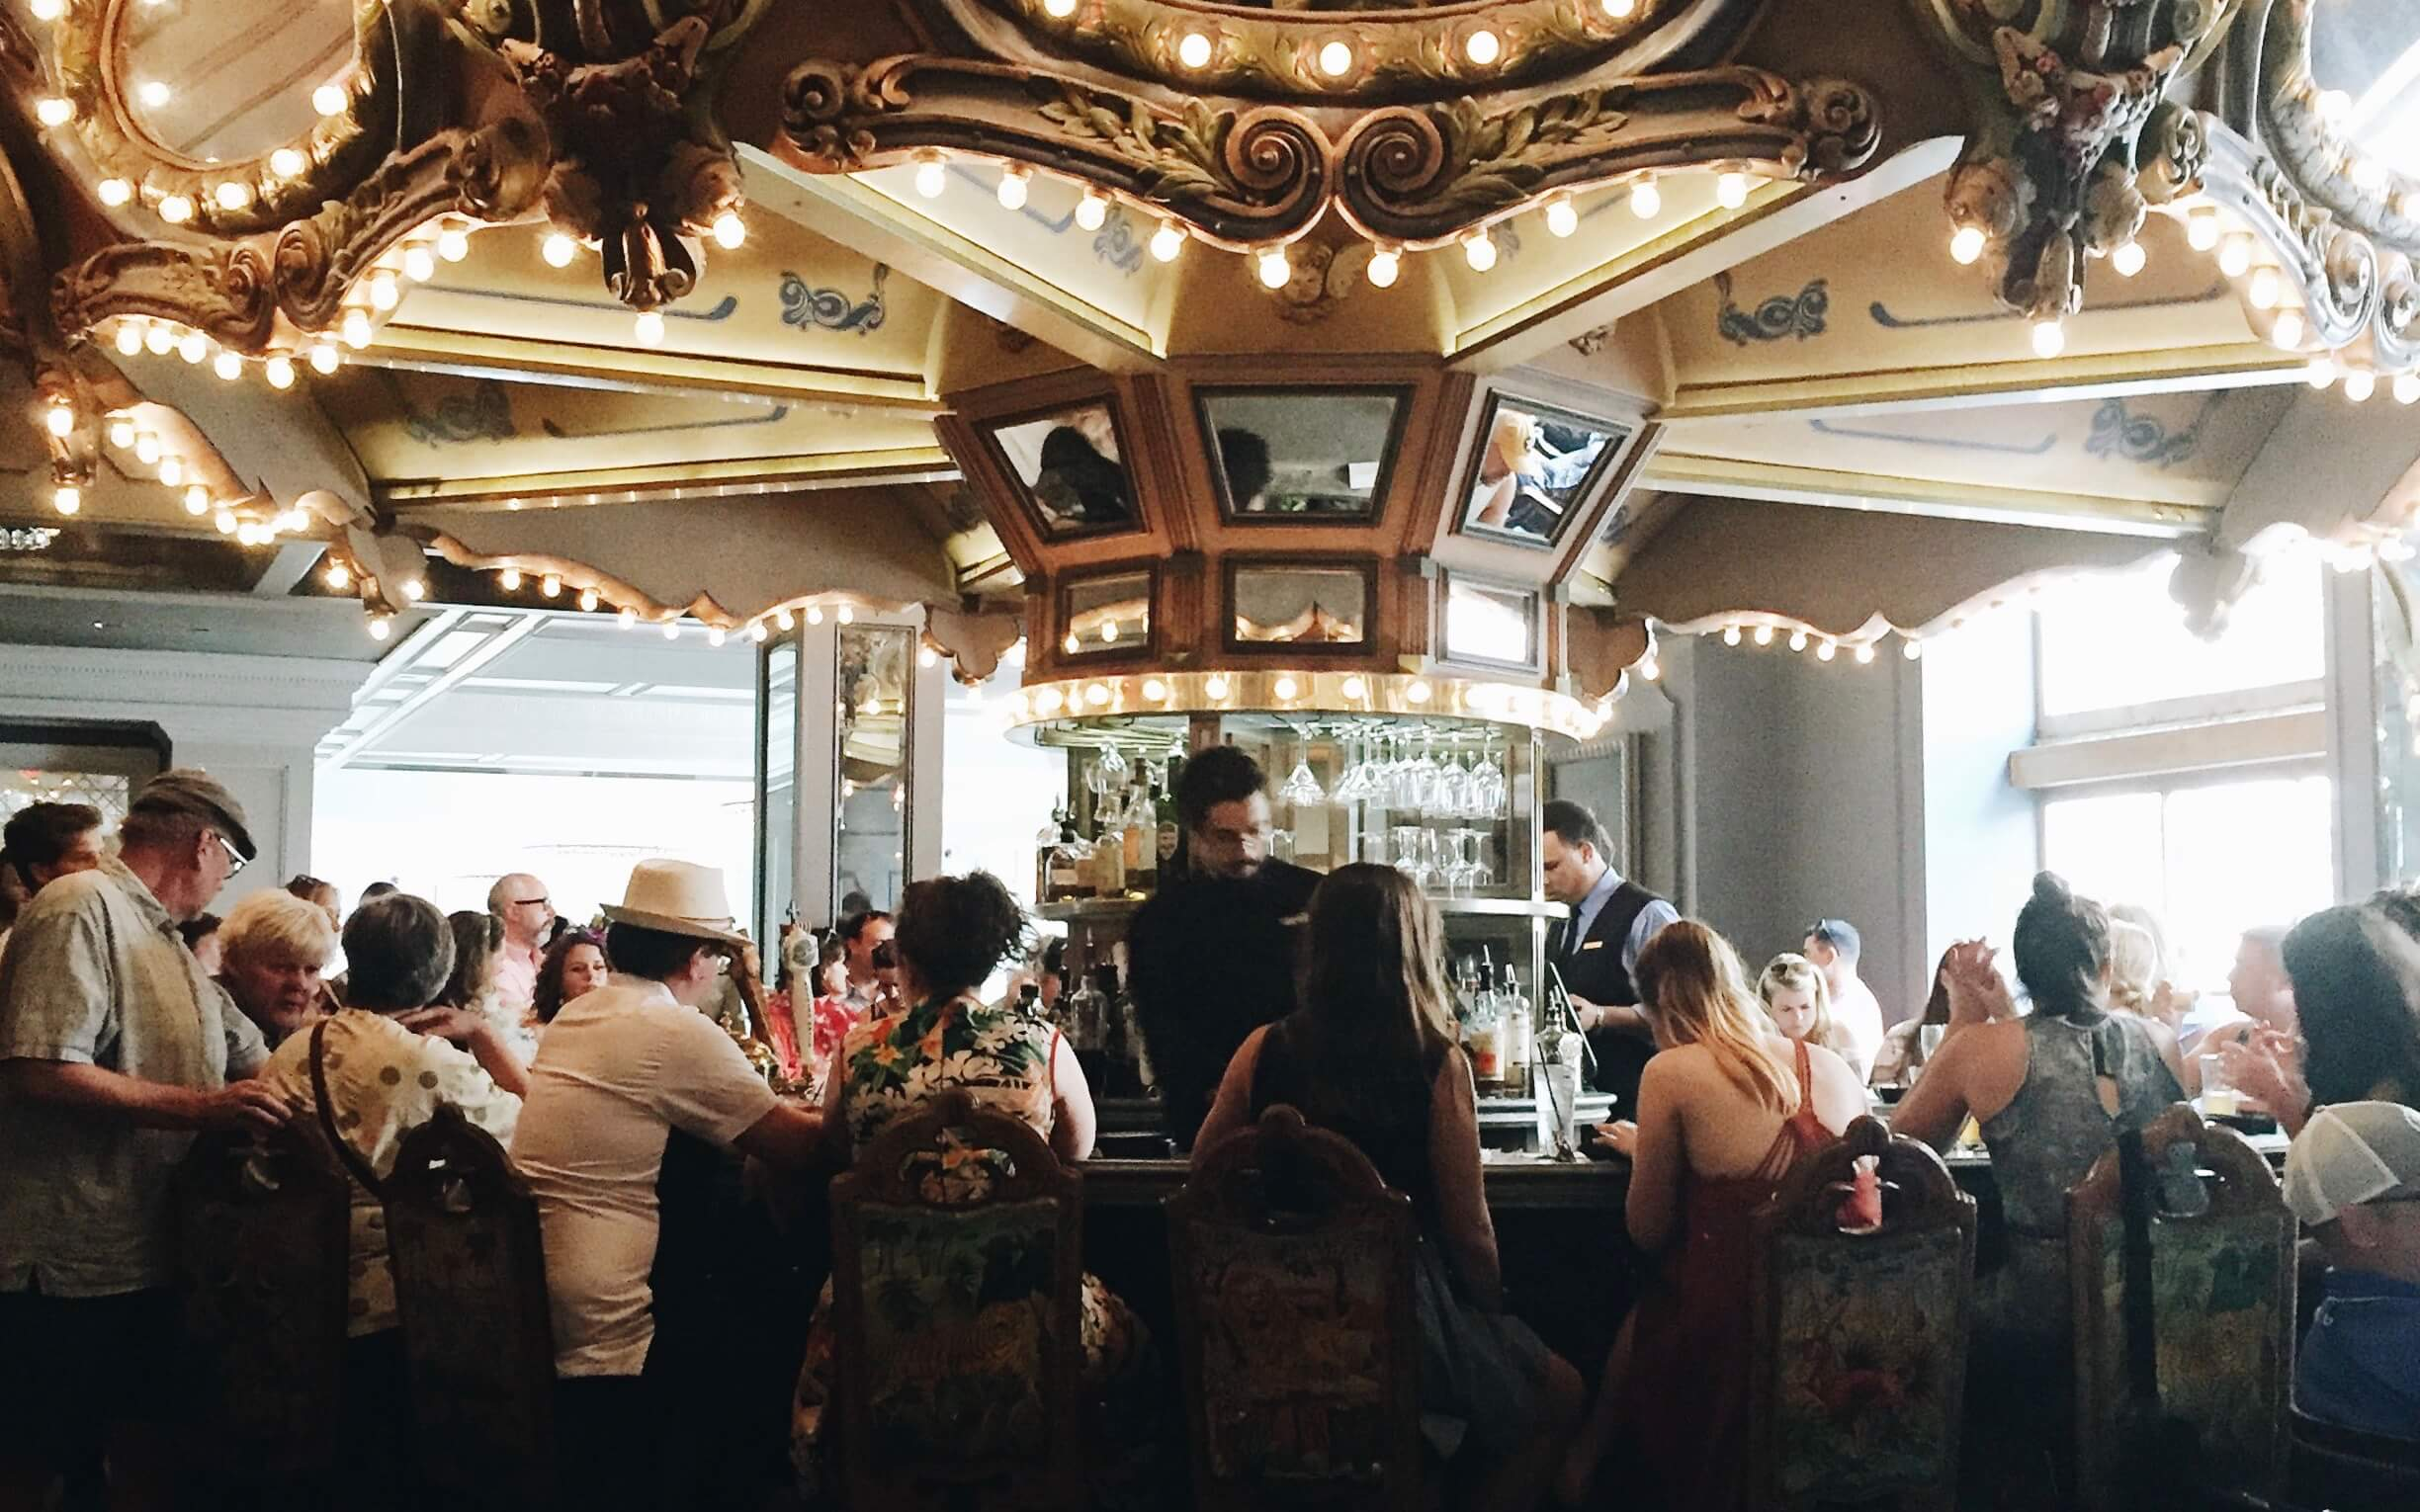 The New Orleans City Photo Guide